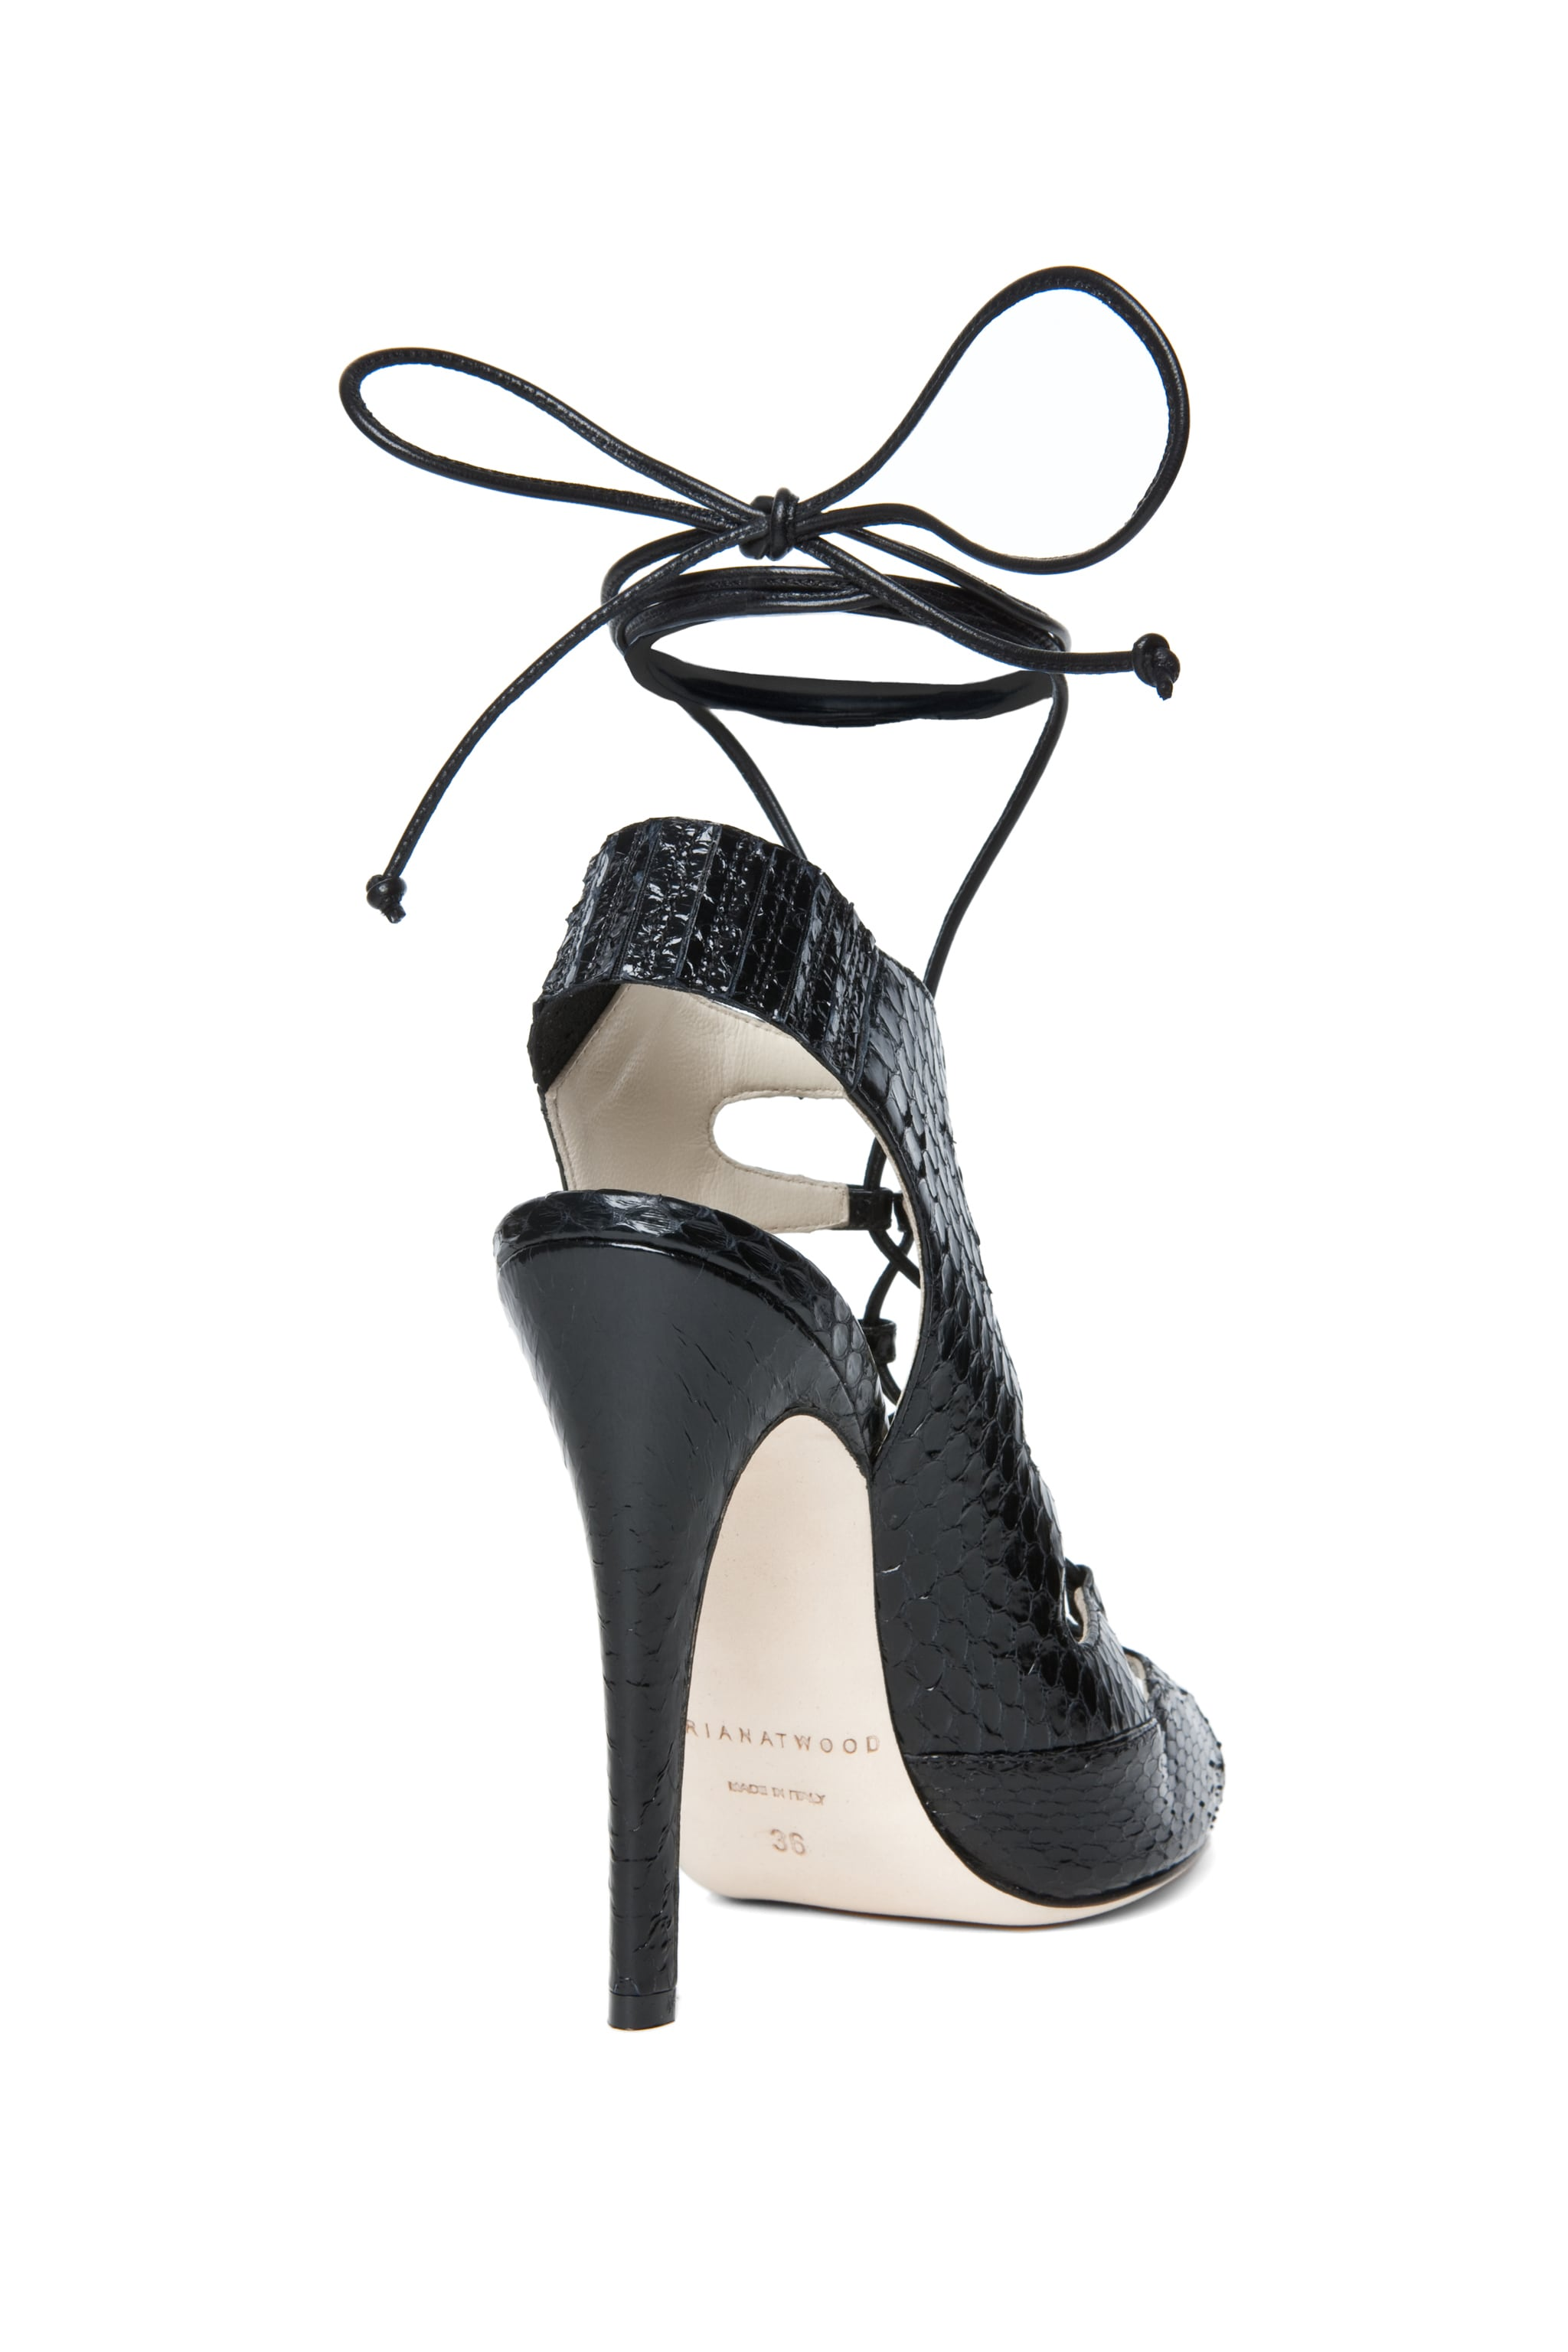 Image 3 of Brian Atwood Tie Me Up Snakeskin Lace Up Sandal in Black Snake